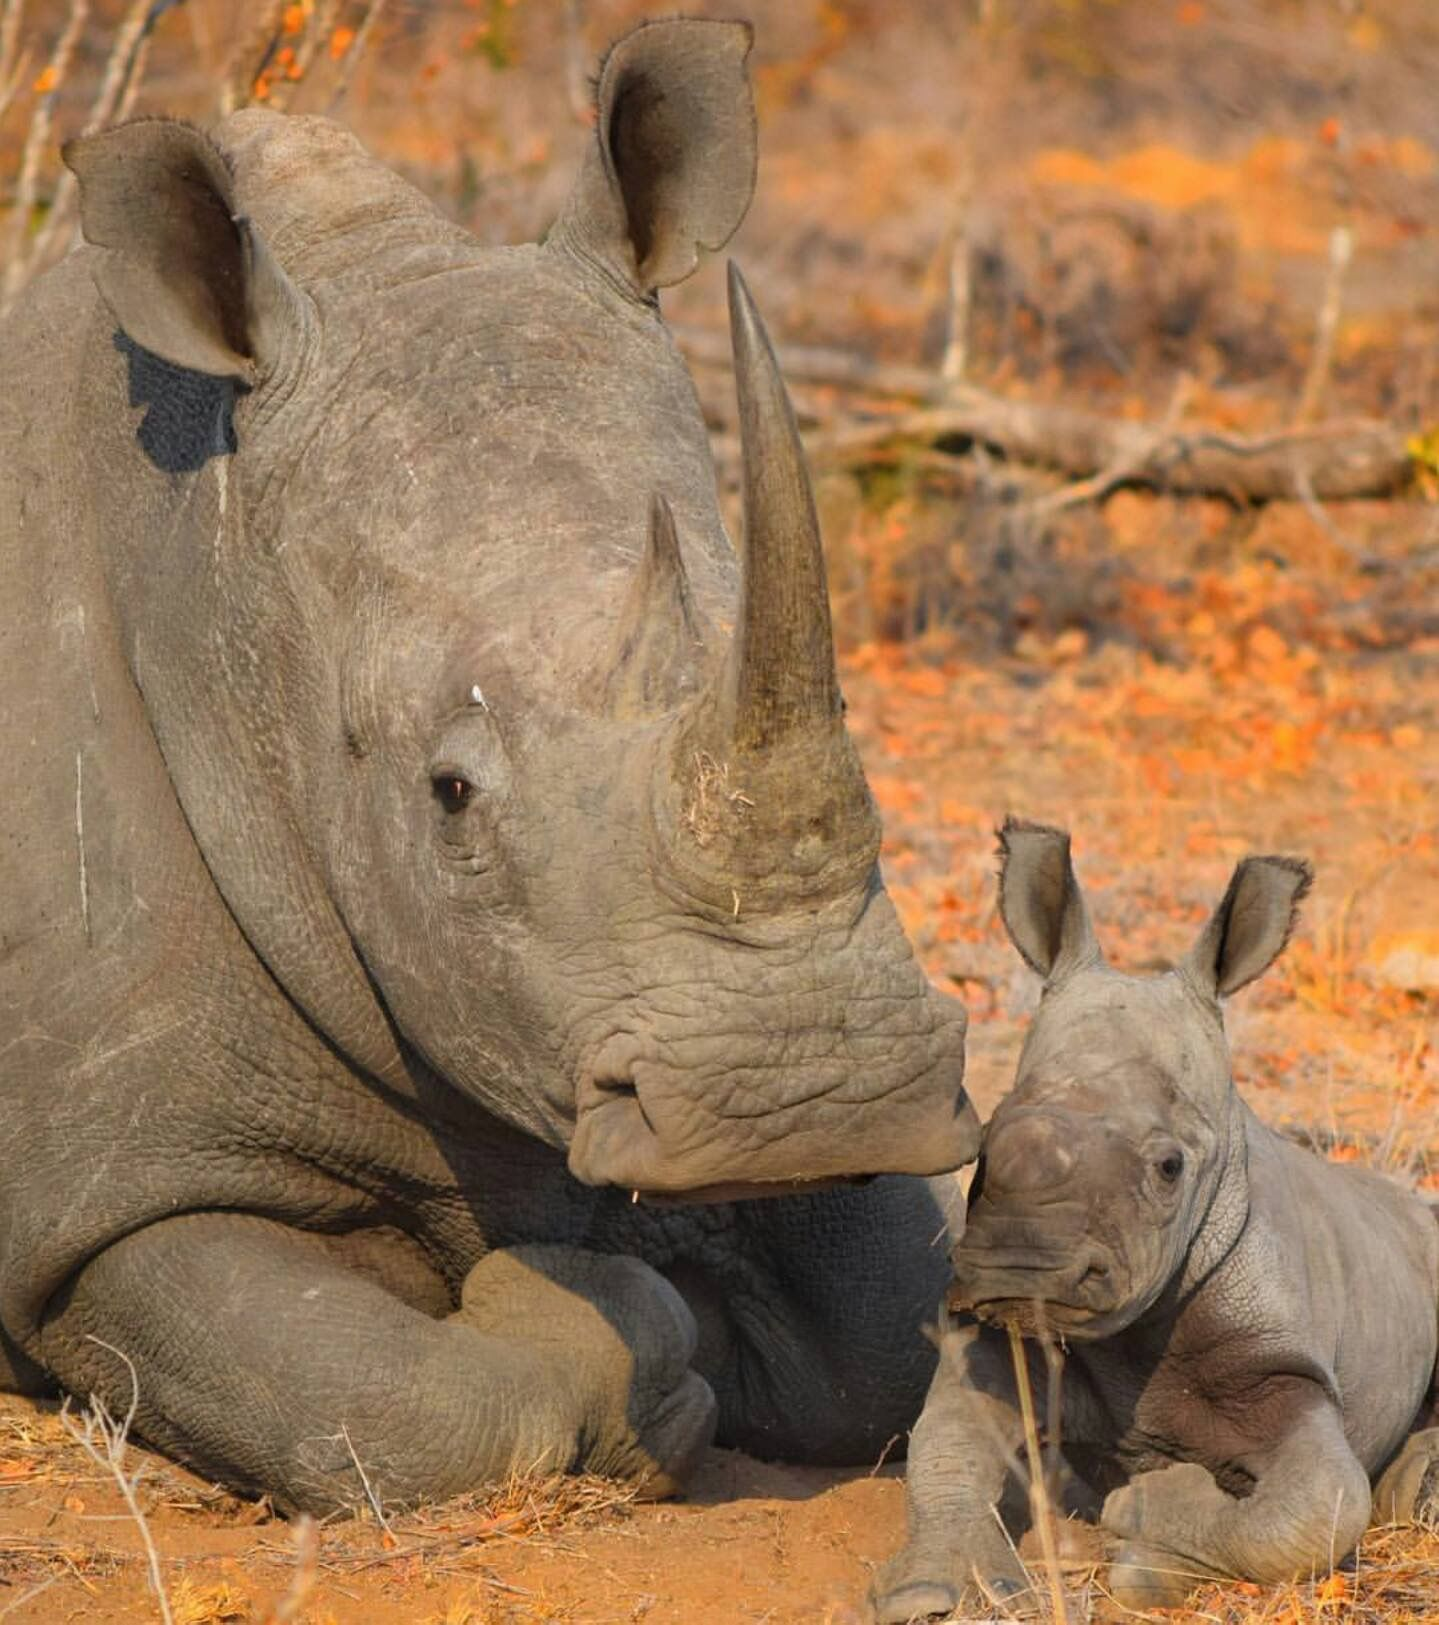 Rhino mom ... and baby 🦏🦏 ..precious (With images) | Save the ...